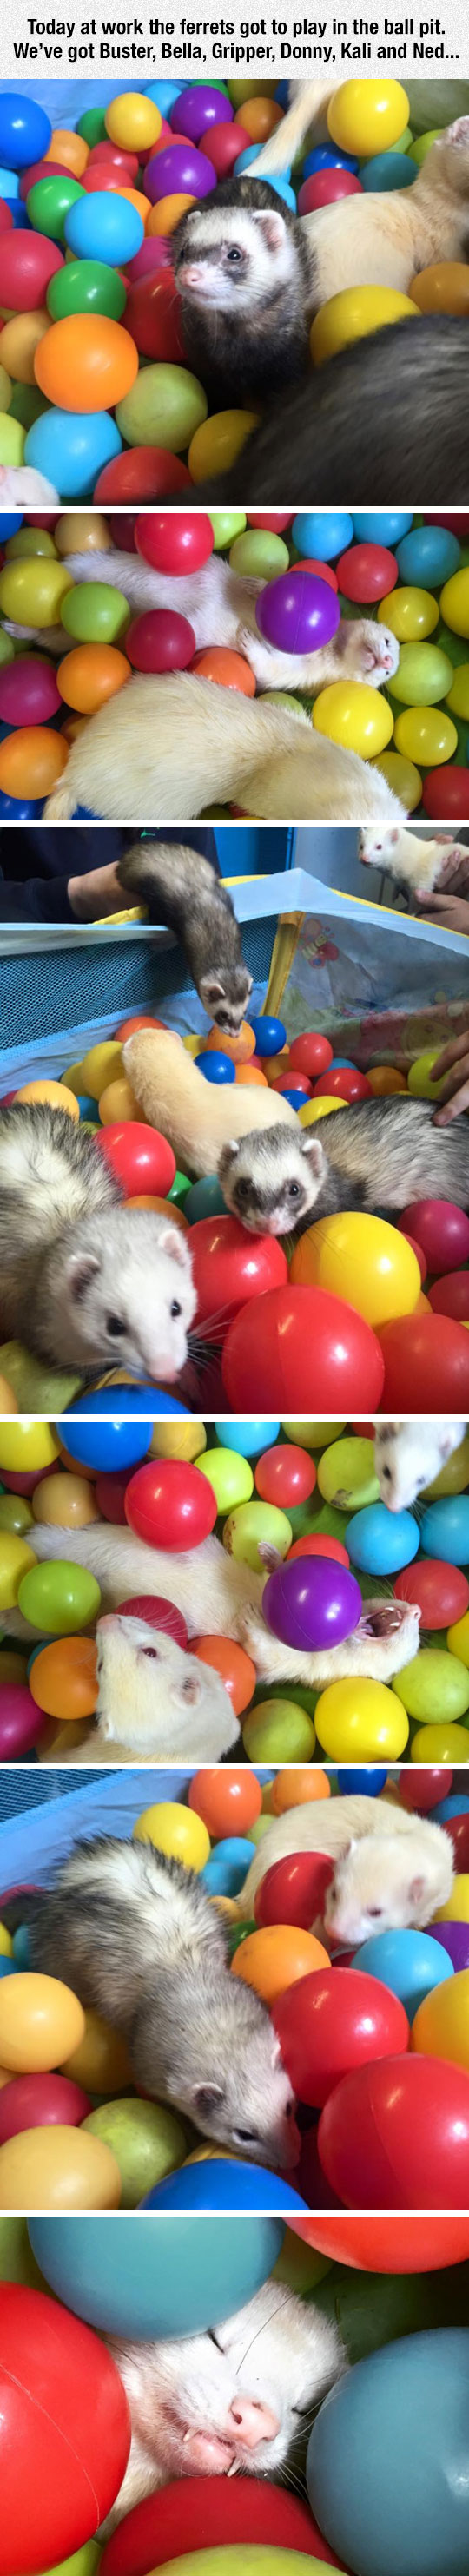 cute-ferret-ball-pit-playing